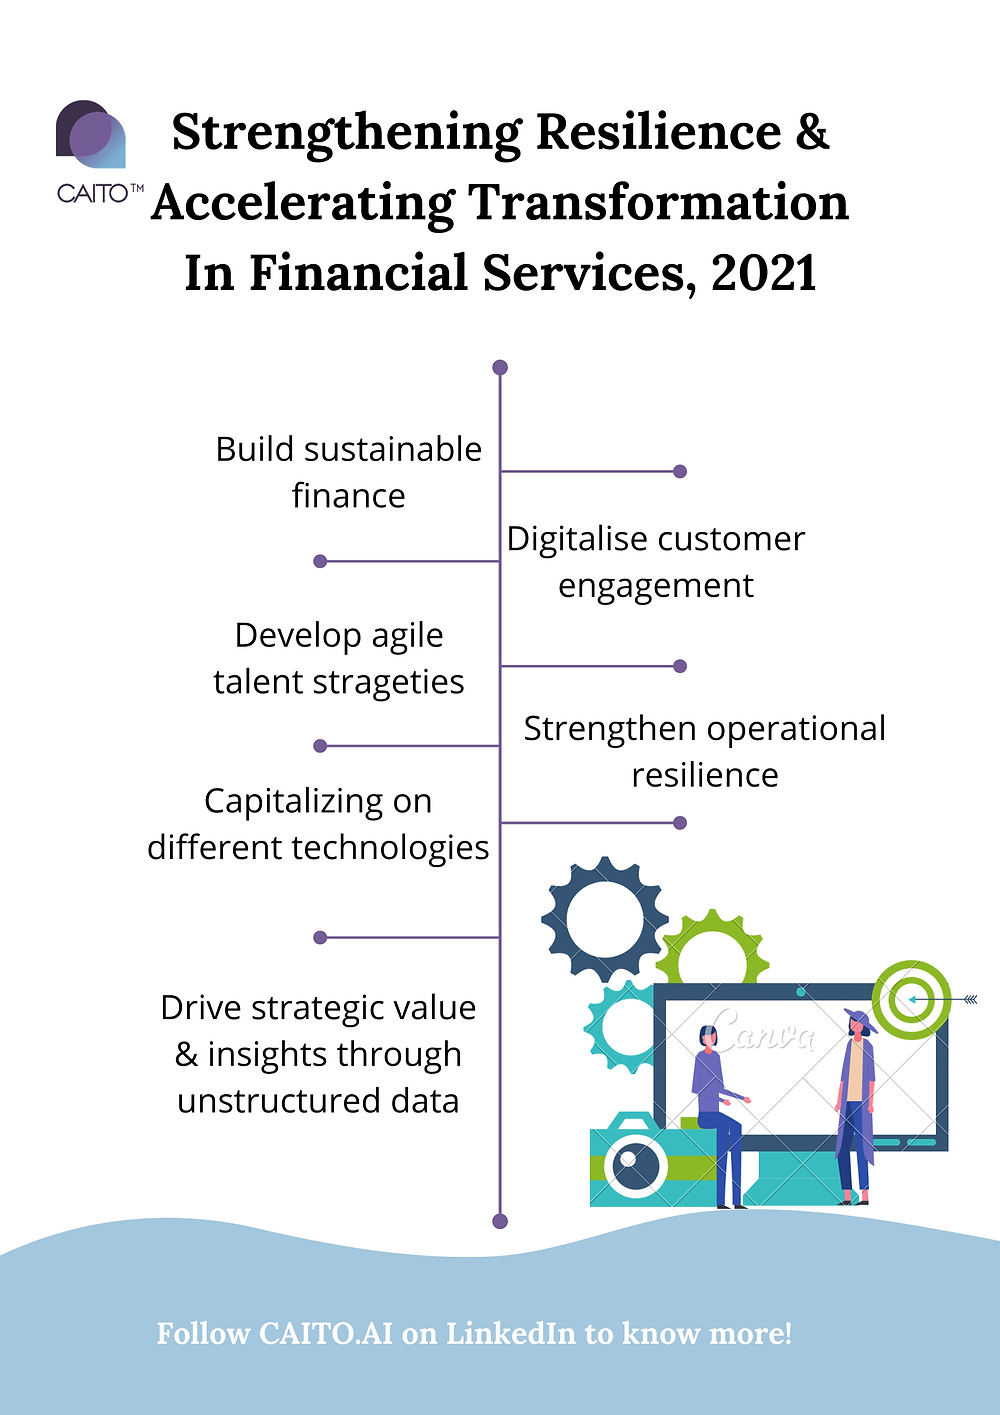 In 2021, Financial Services leaders will likely need to make some hard decisions on optimal models around #operations, #talent management and customer service. To enhance #sustainability, #collaboration and resilience, leveraging the right strategies and technologies is critical to the success of these programs.  At CAITO, we can help your organisations in strengthening #resilience and accelerating #transformation through customised strategies & Cognitive AI solutions.